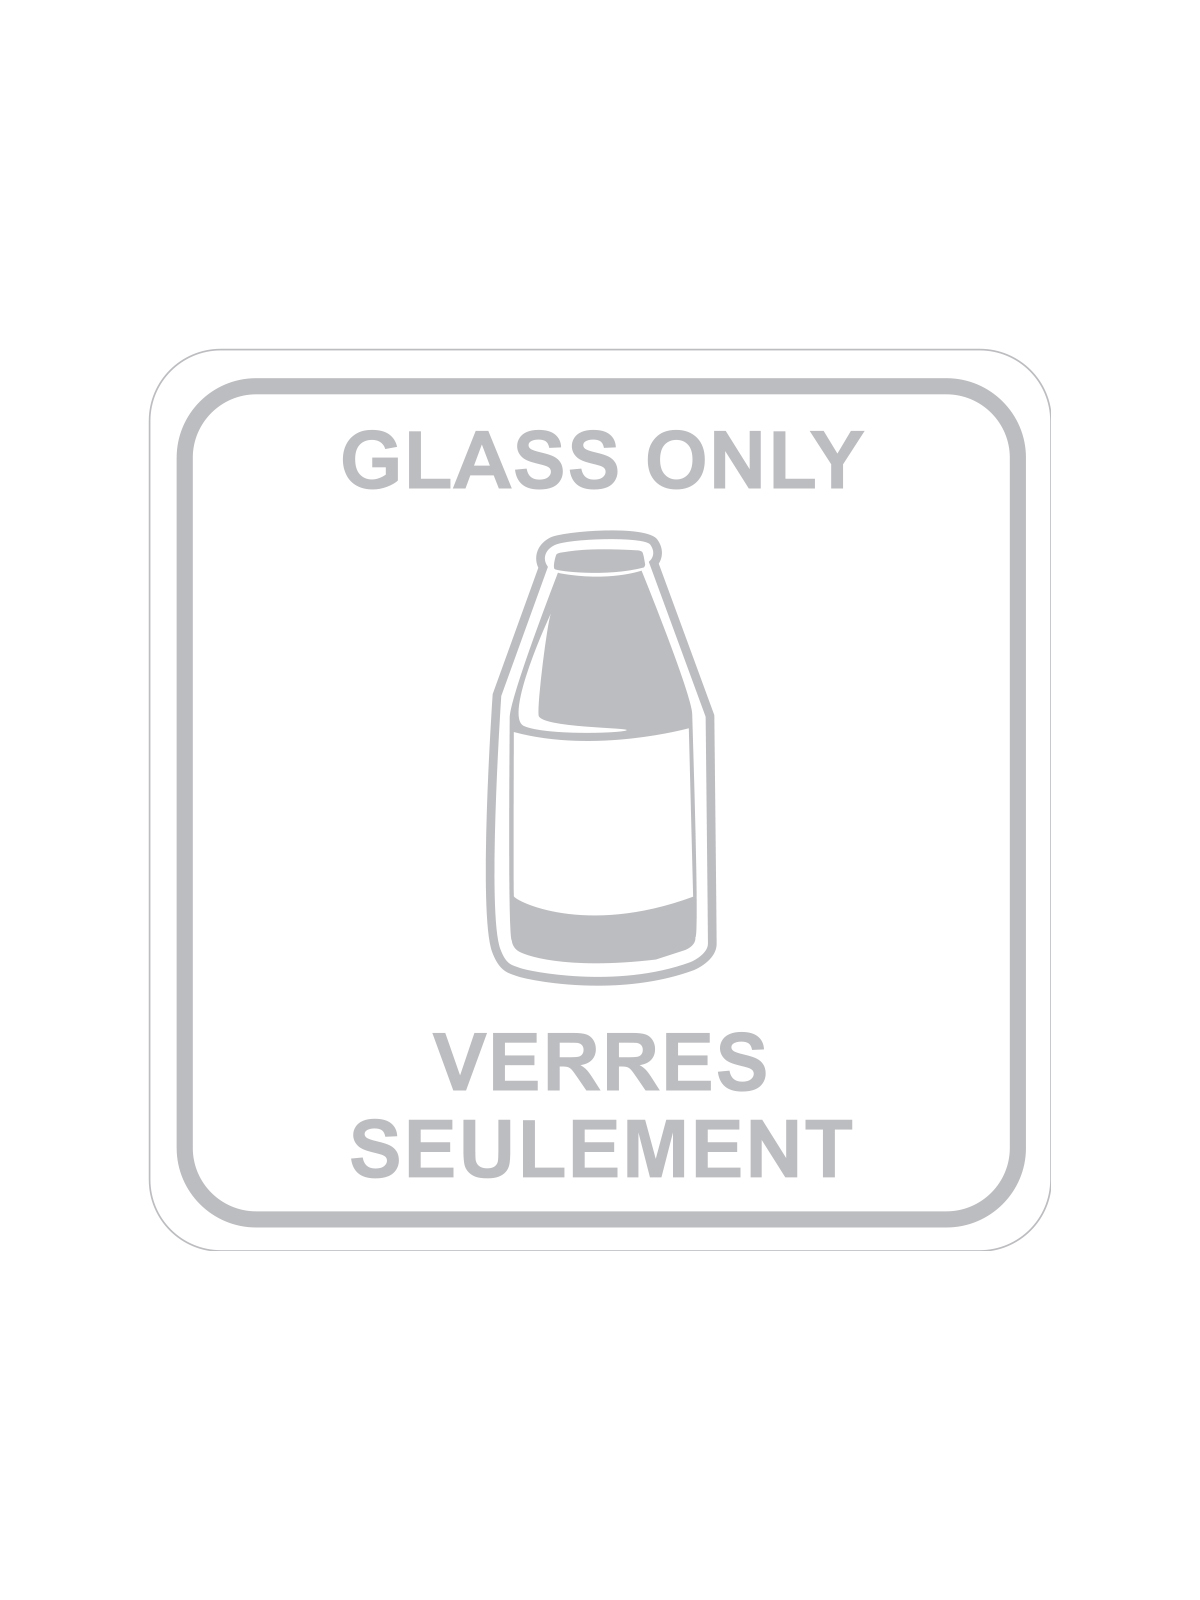 SQUARE LABEL GLASS ONLY - ENG/FRE title=